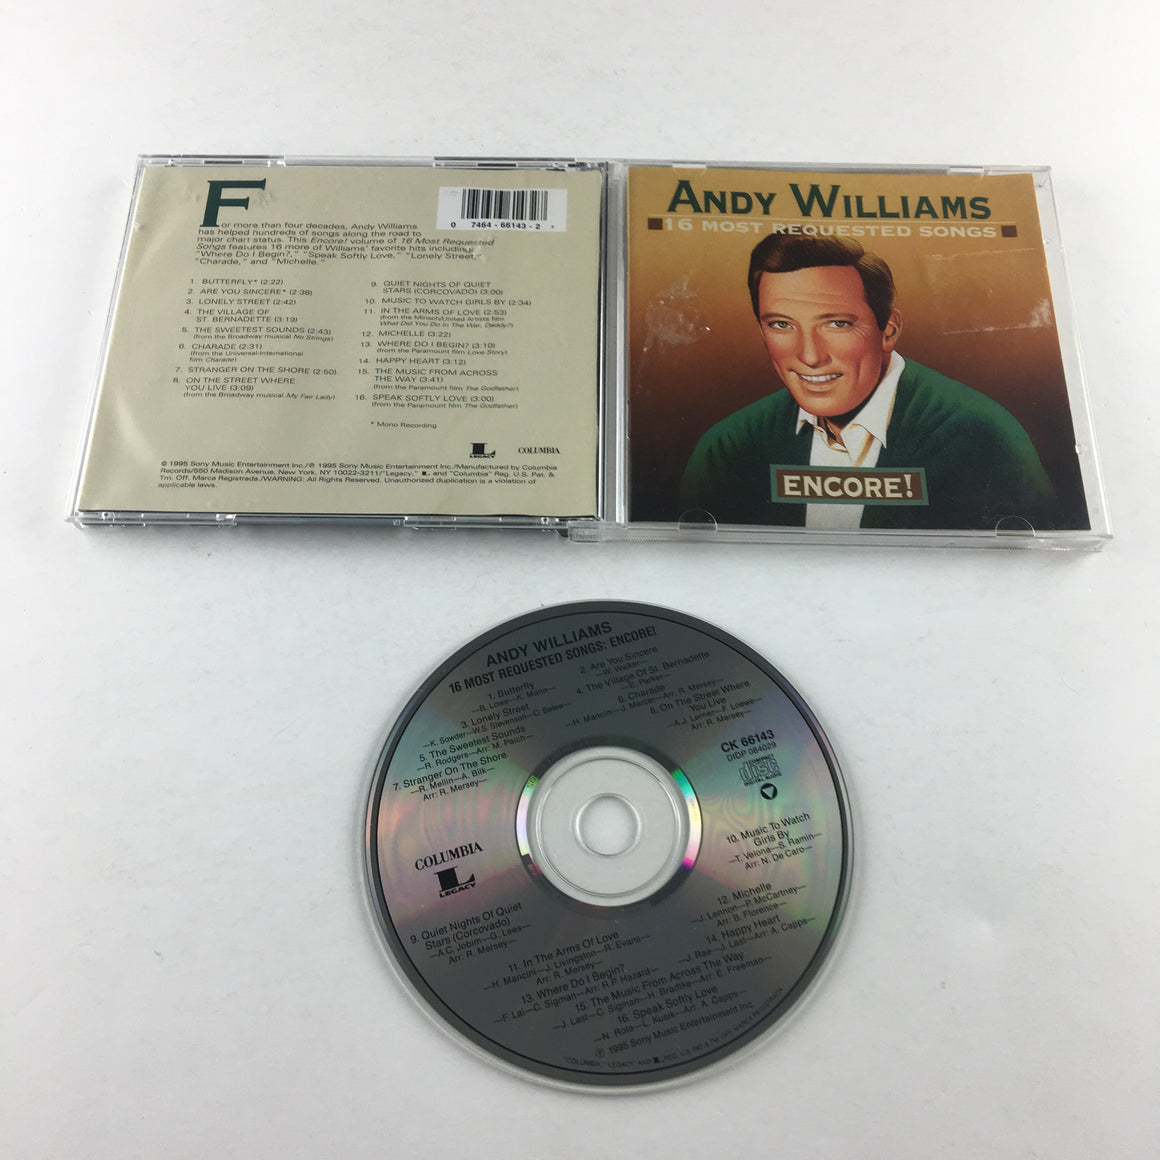 Andy Williams 16 Most Requested Songs: Encore! Used CD VG+ CK 66143